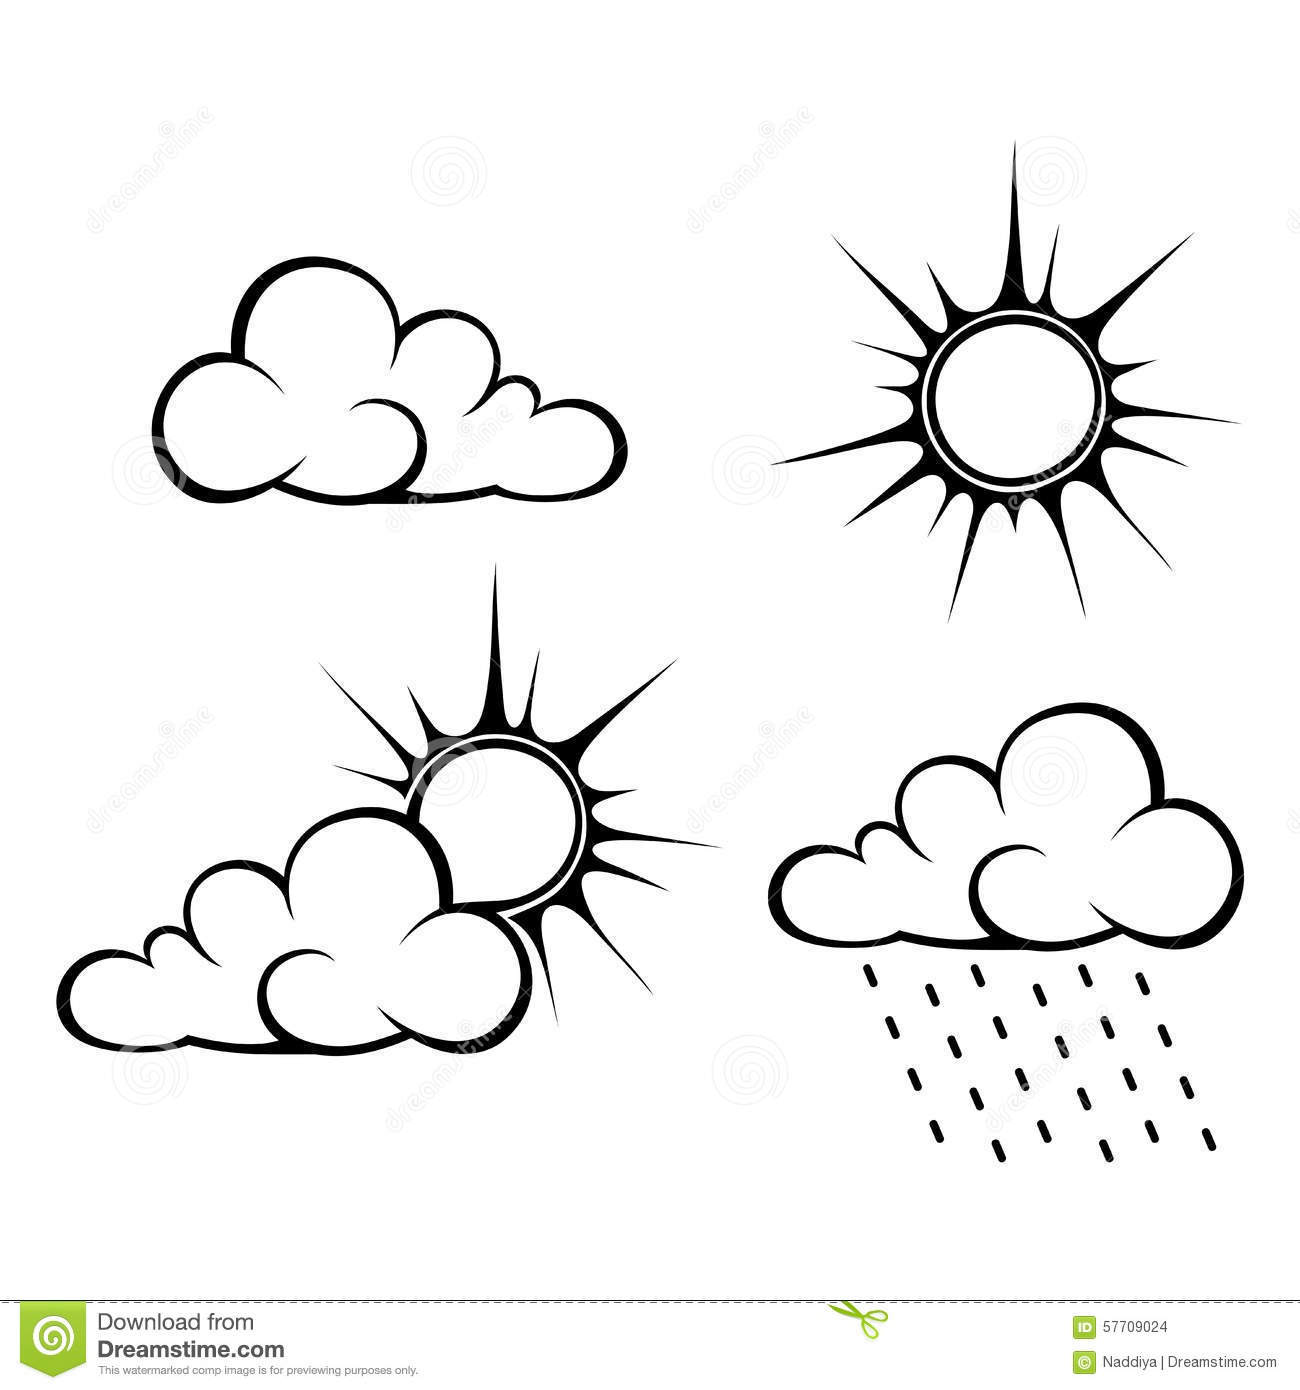 Black Contours Of Clouds And Sun Vector Illustration